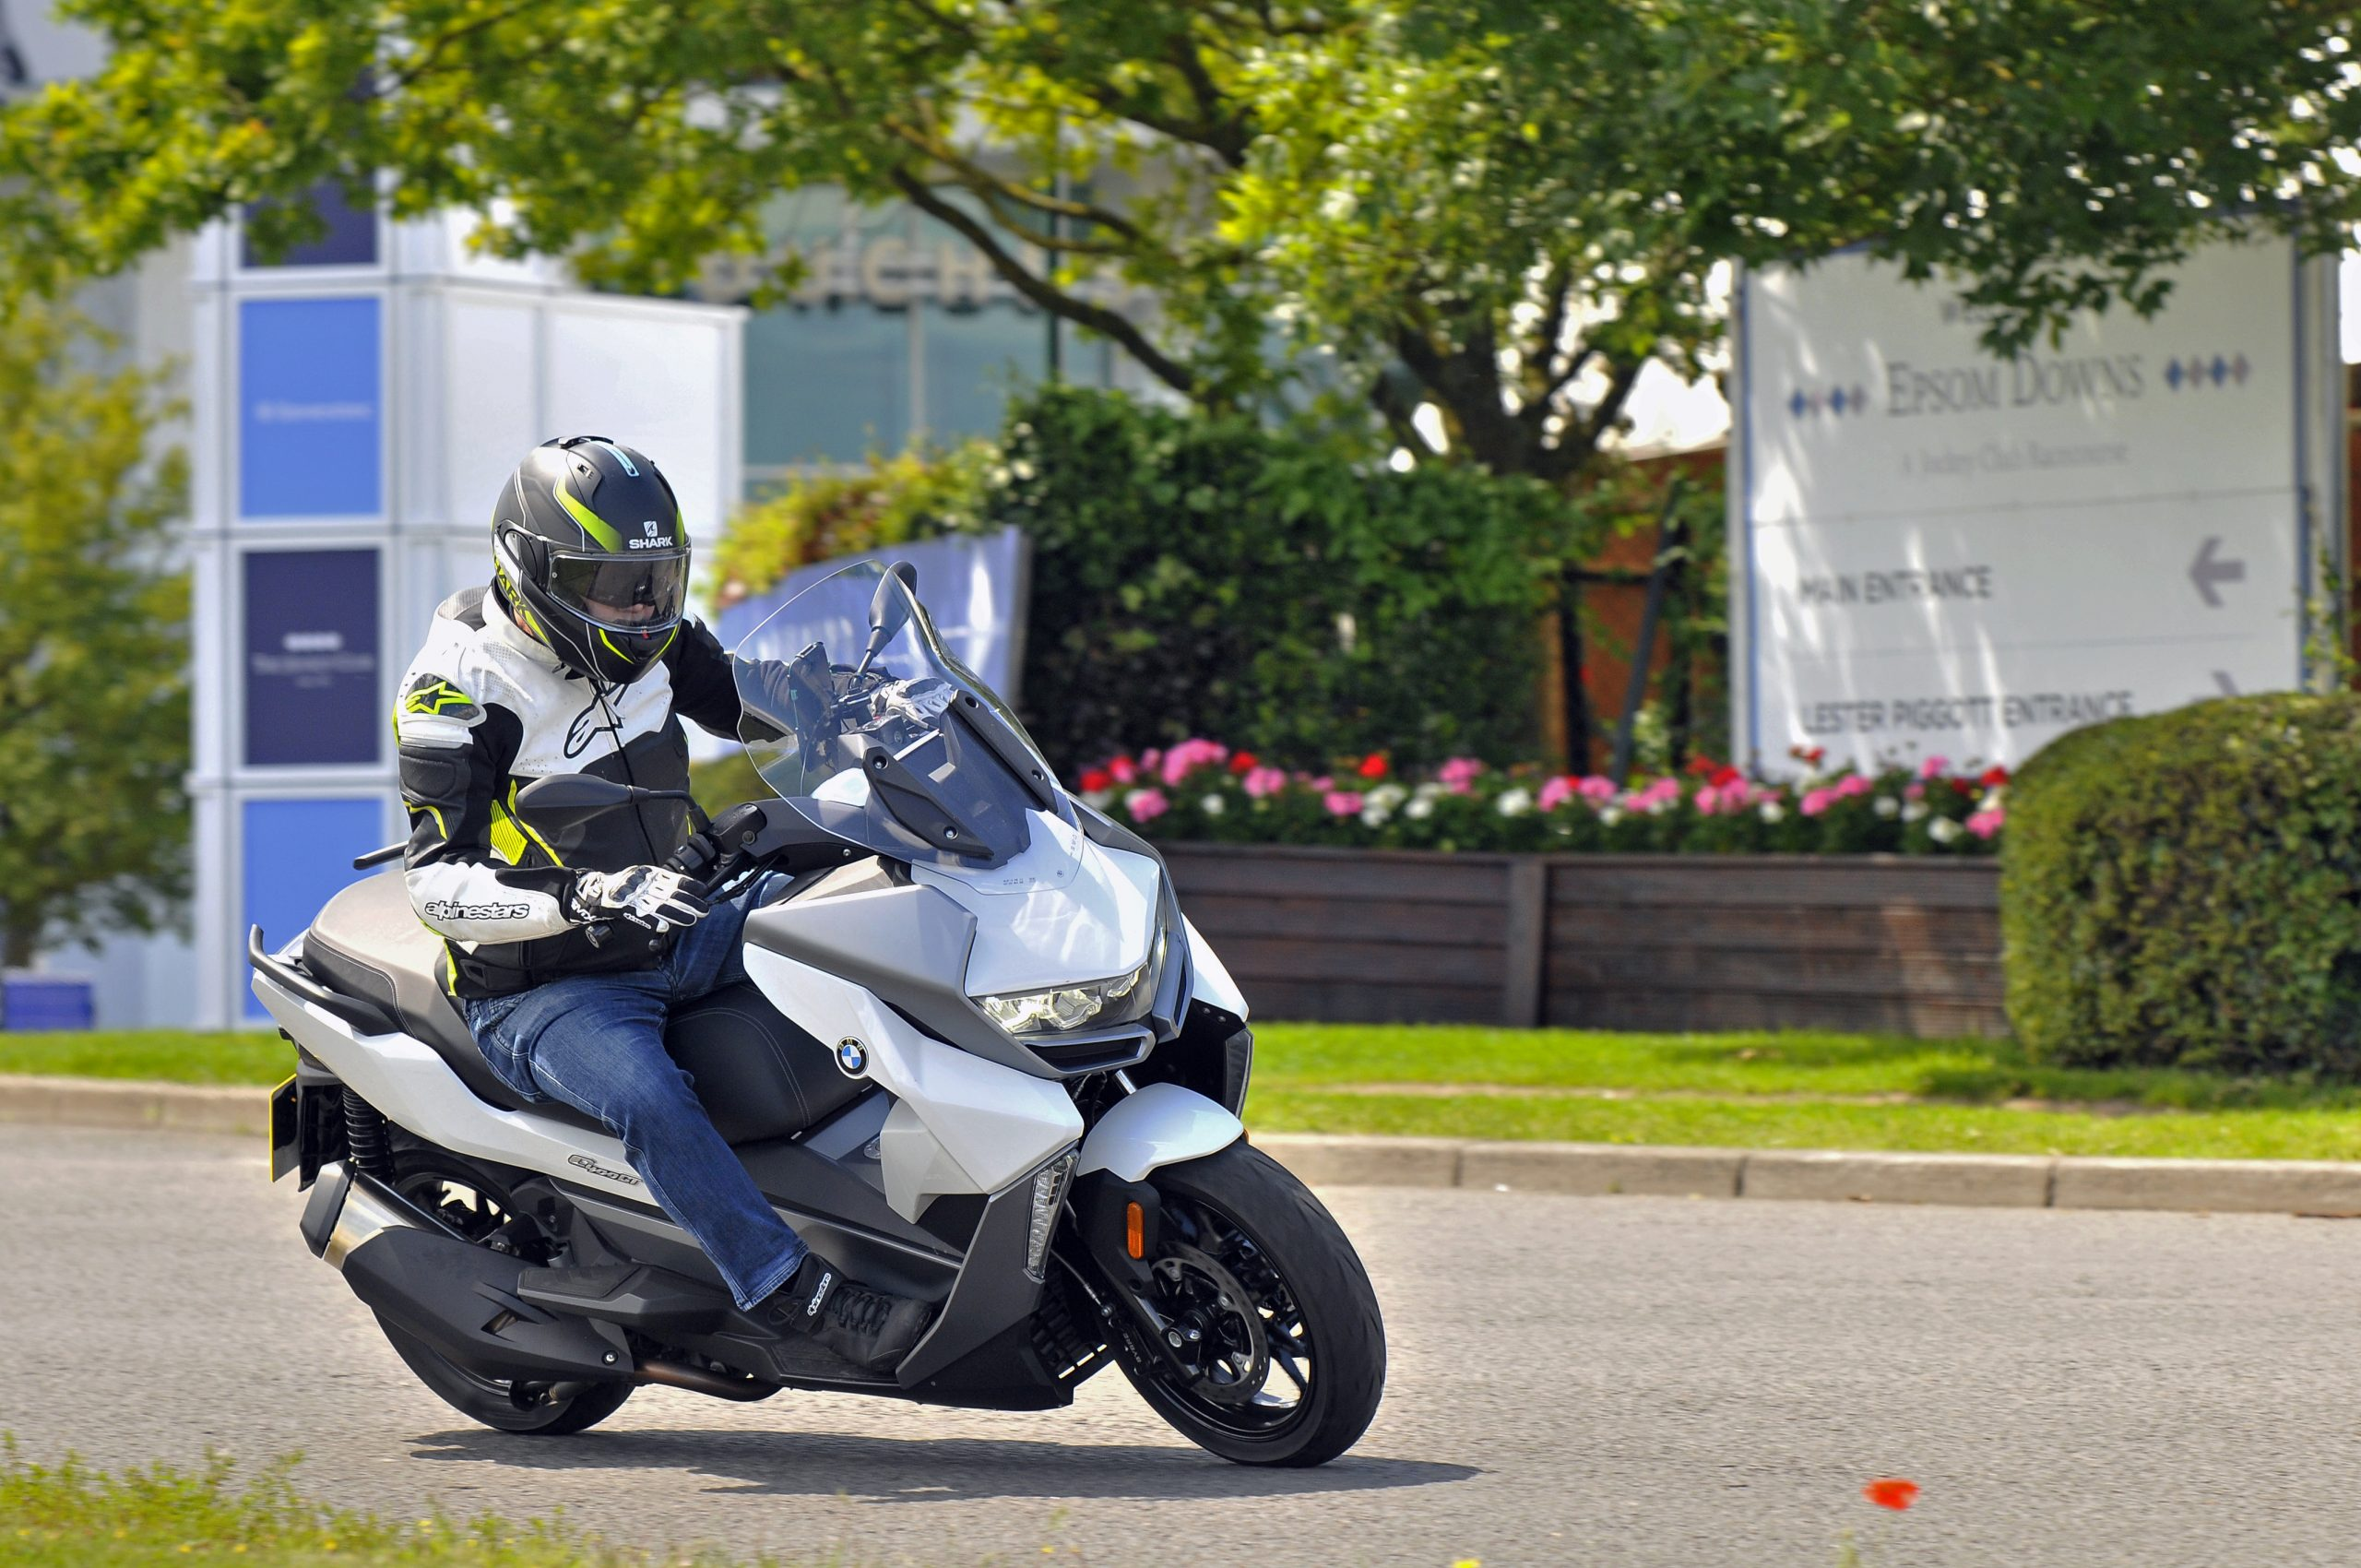 BMW C400 GT in action